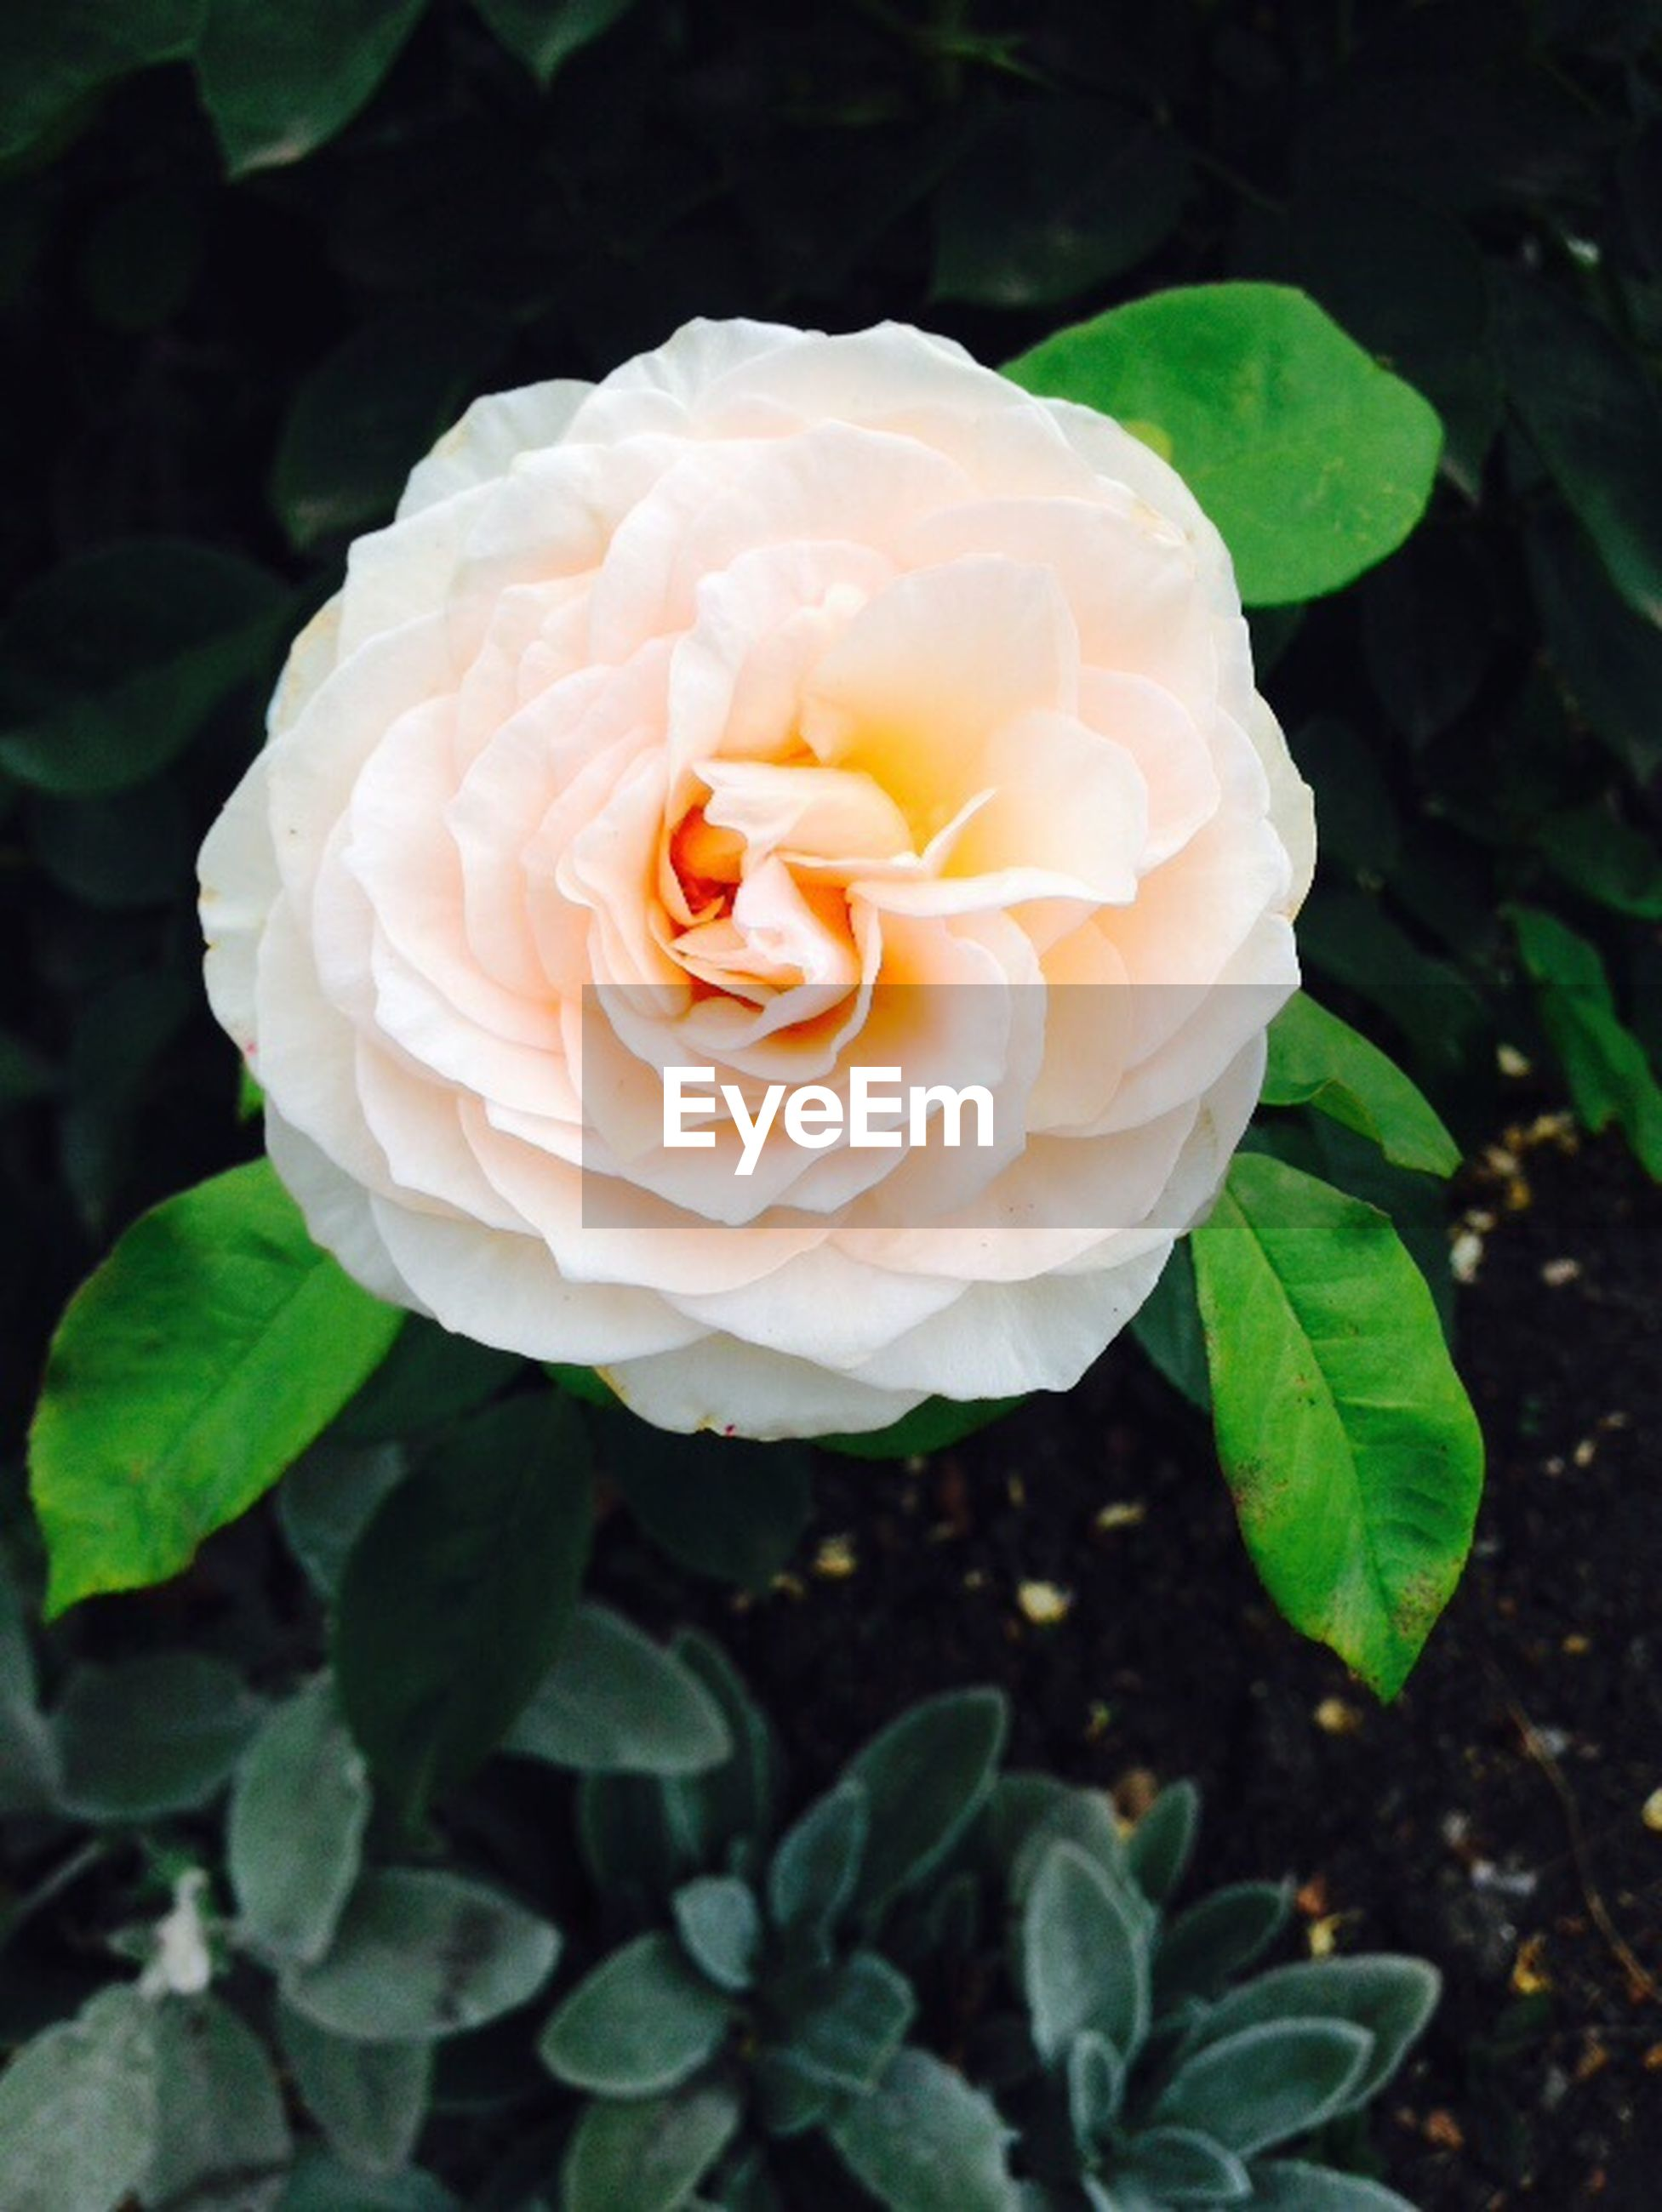 flower, petal, flower head, freshness, fragility, rose - flower, growth, beauty in nature, single flower, close-up, leaf, blooming, nature, plant, rose, in bloom, focus on foreground, high angle view, single rose, blossom